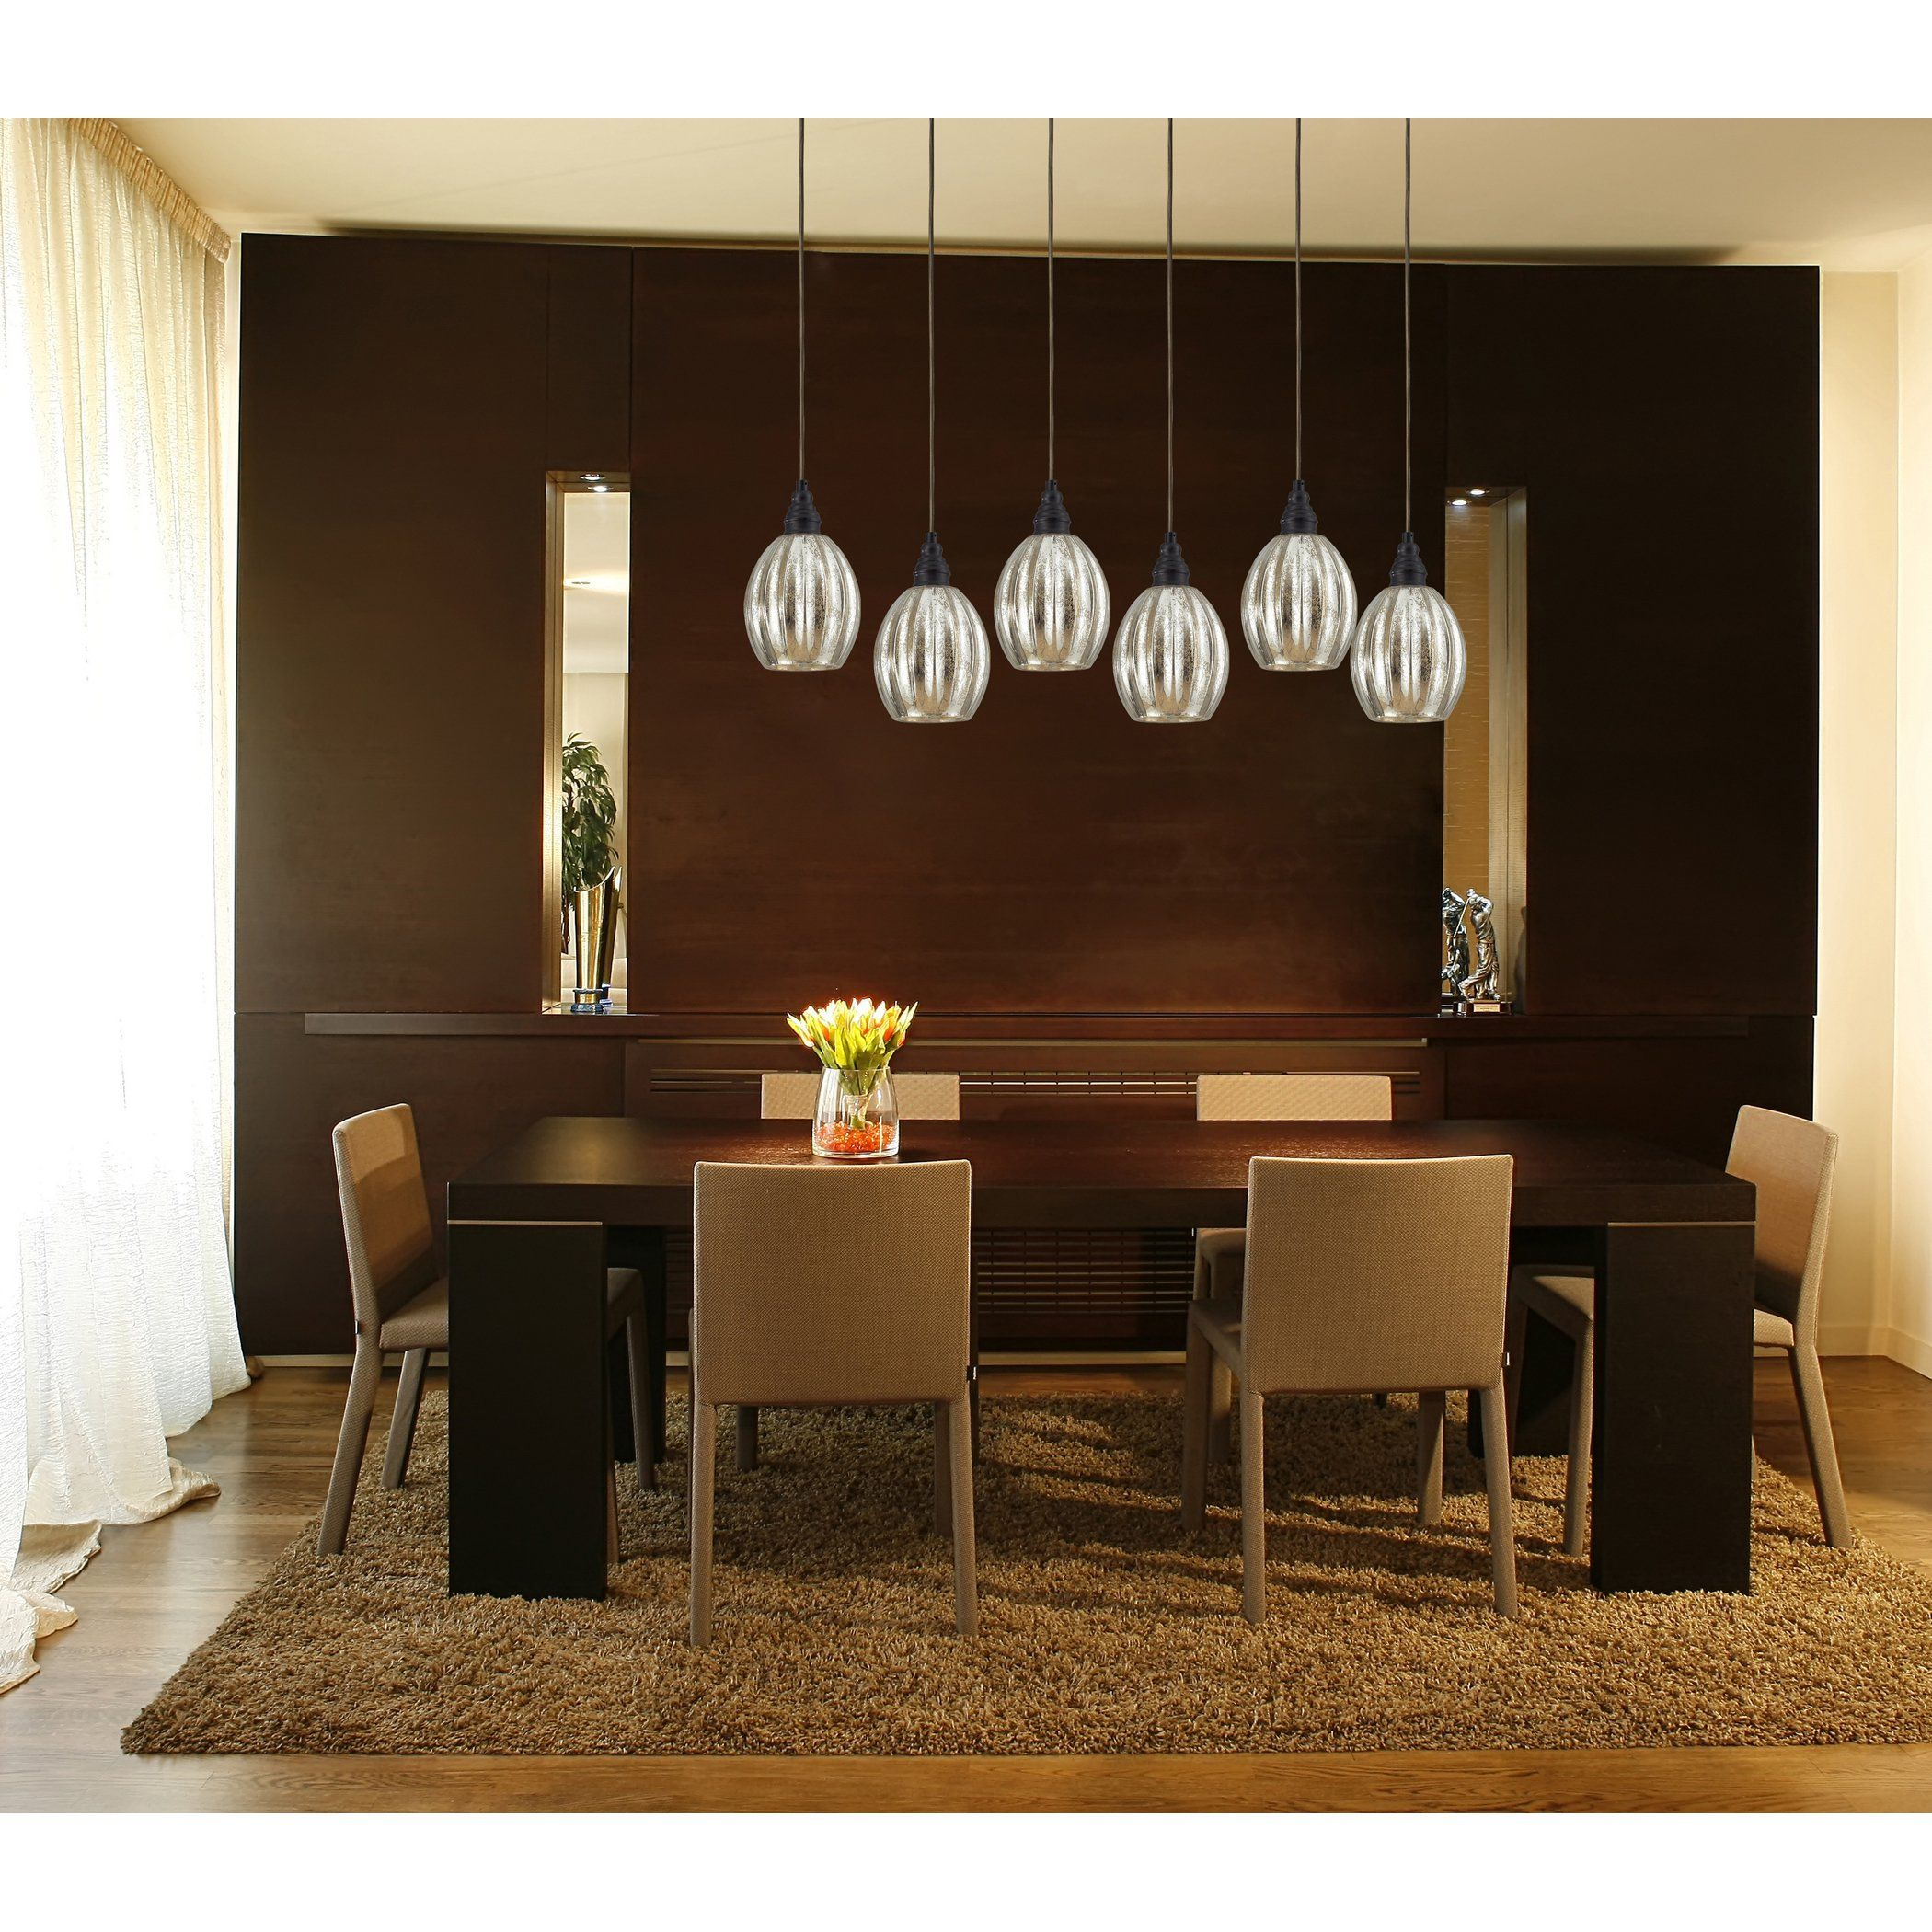 Classy Of Light Fixture Ideas fabulous dining room light fixtures decoration also home interior design ideas with dining room light fixtures Beautiful Elk Lighting For Brightest Interior Home Lighting Ideas Classy Elk Lighting With 3 Danica